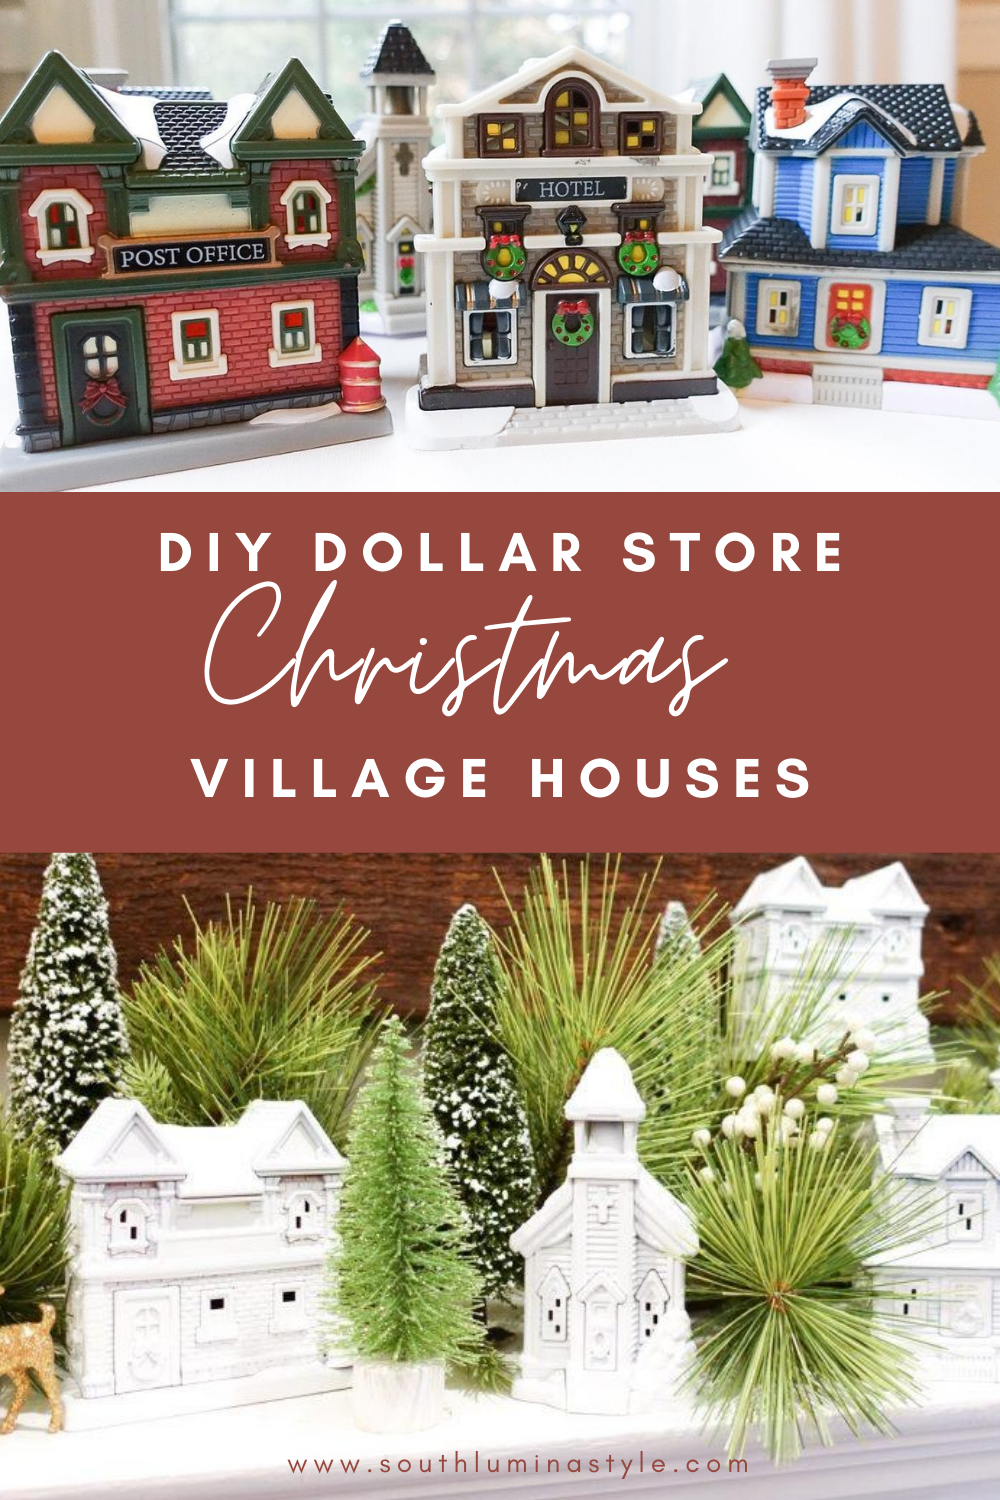 The Villages 2020 Christmas Ornament DIY Dollar Store Christmas Village   South Lumina Style in 2020